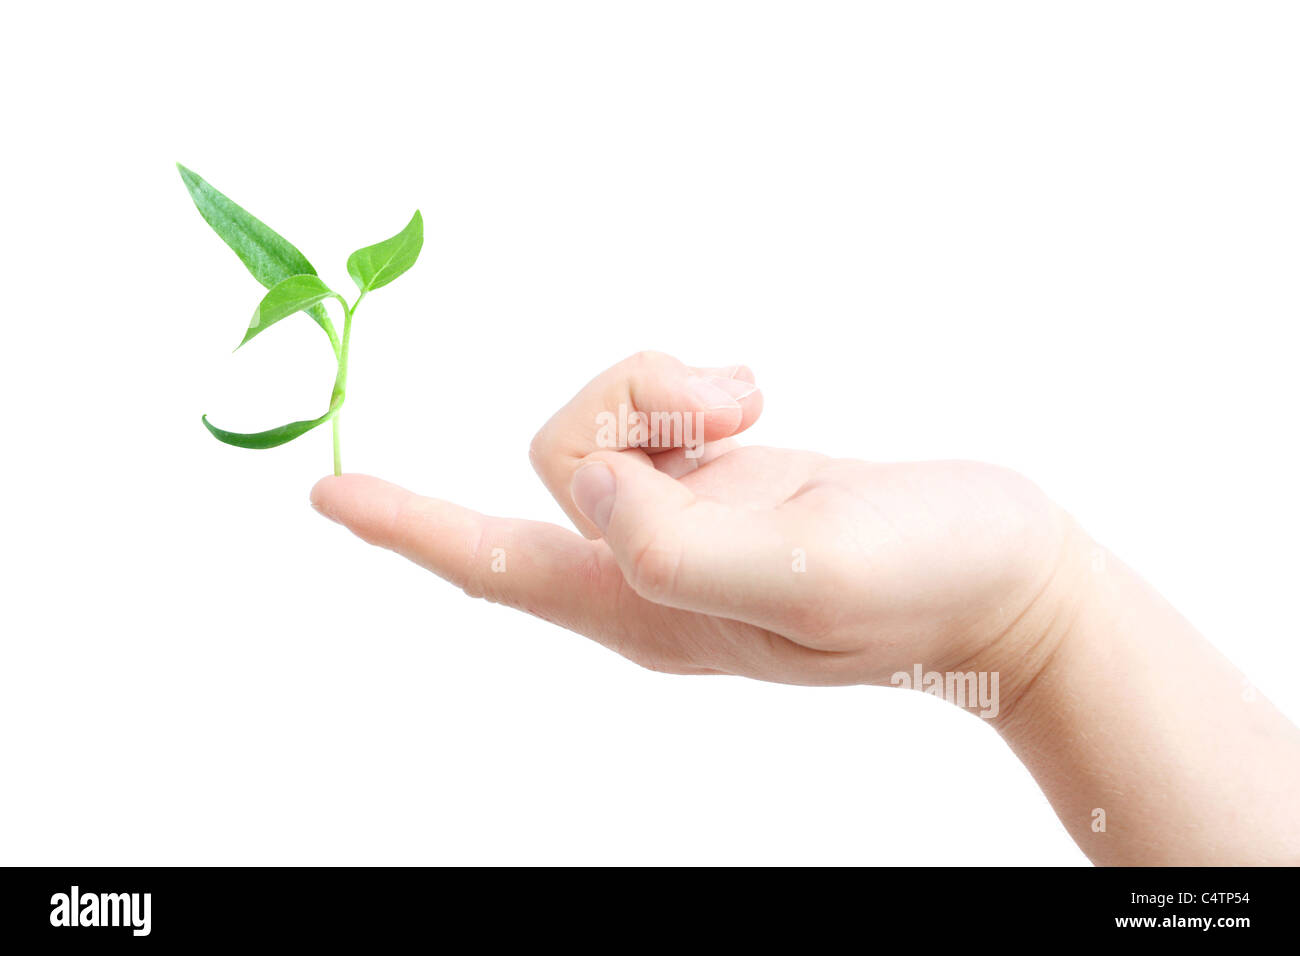 Finger supporting a new plant - Stock Image